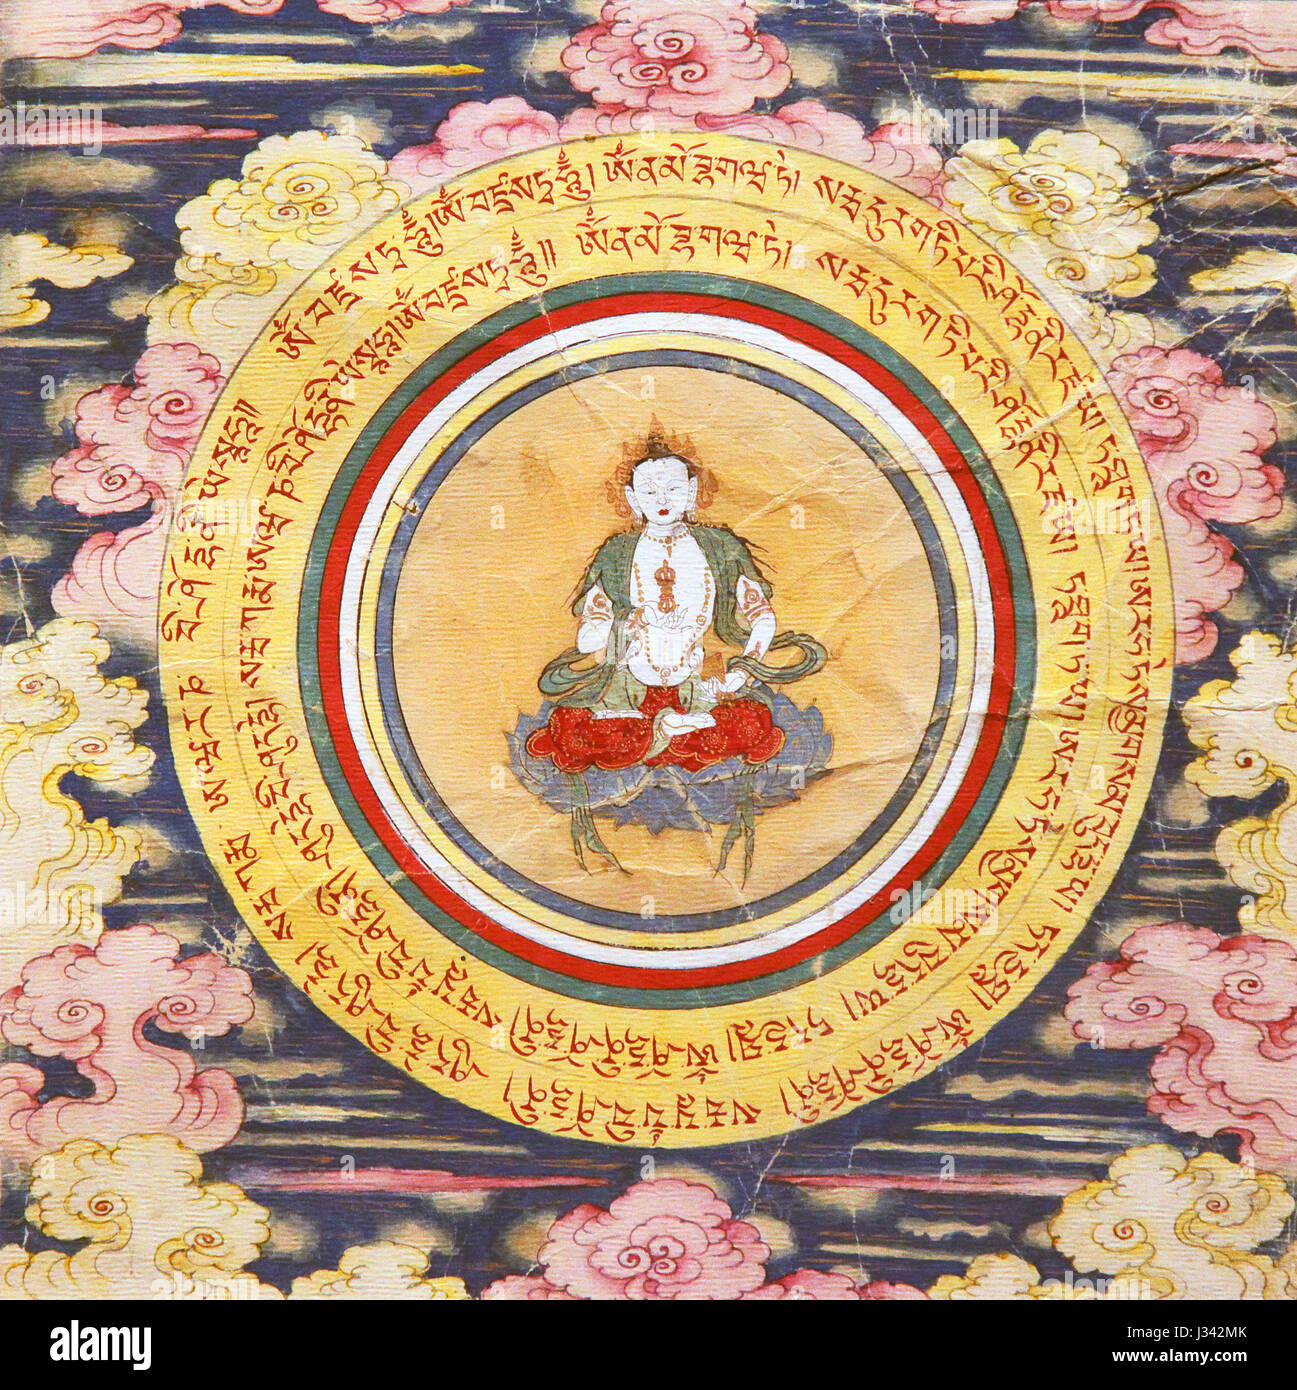 Tibetan Painting Stock Photos & Tibetan Painting Stock Images - Alamy